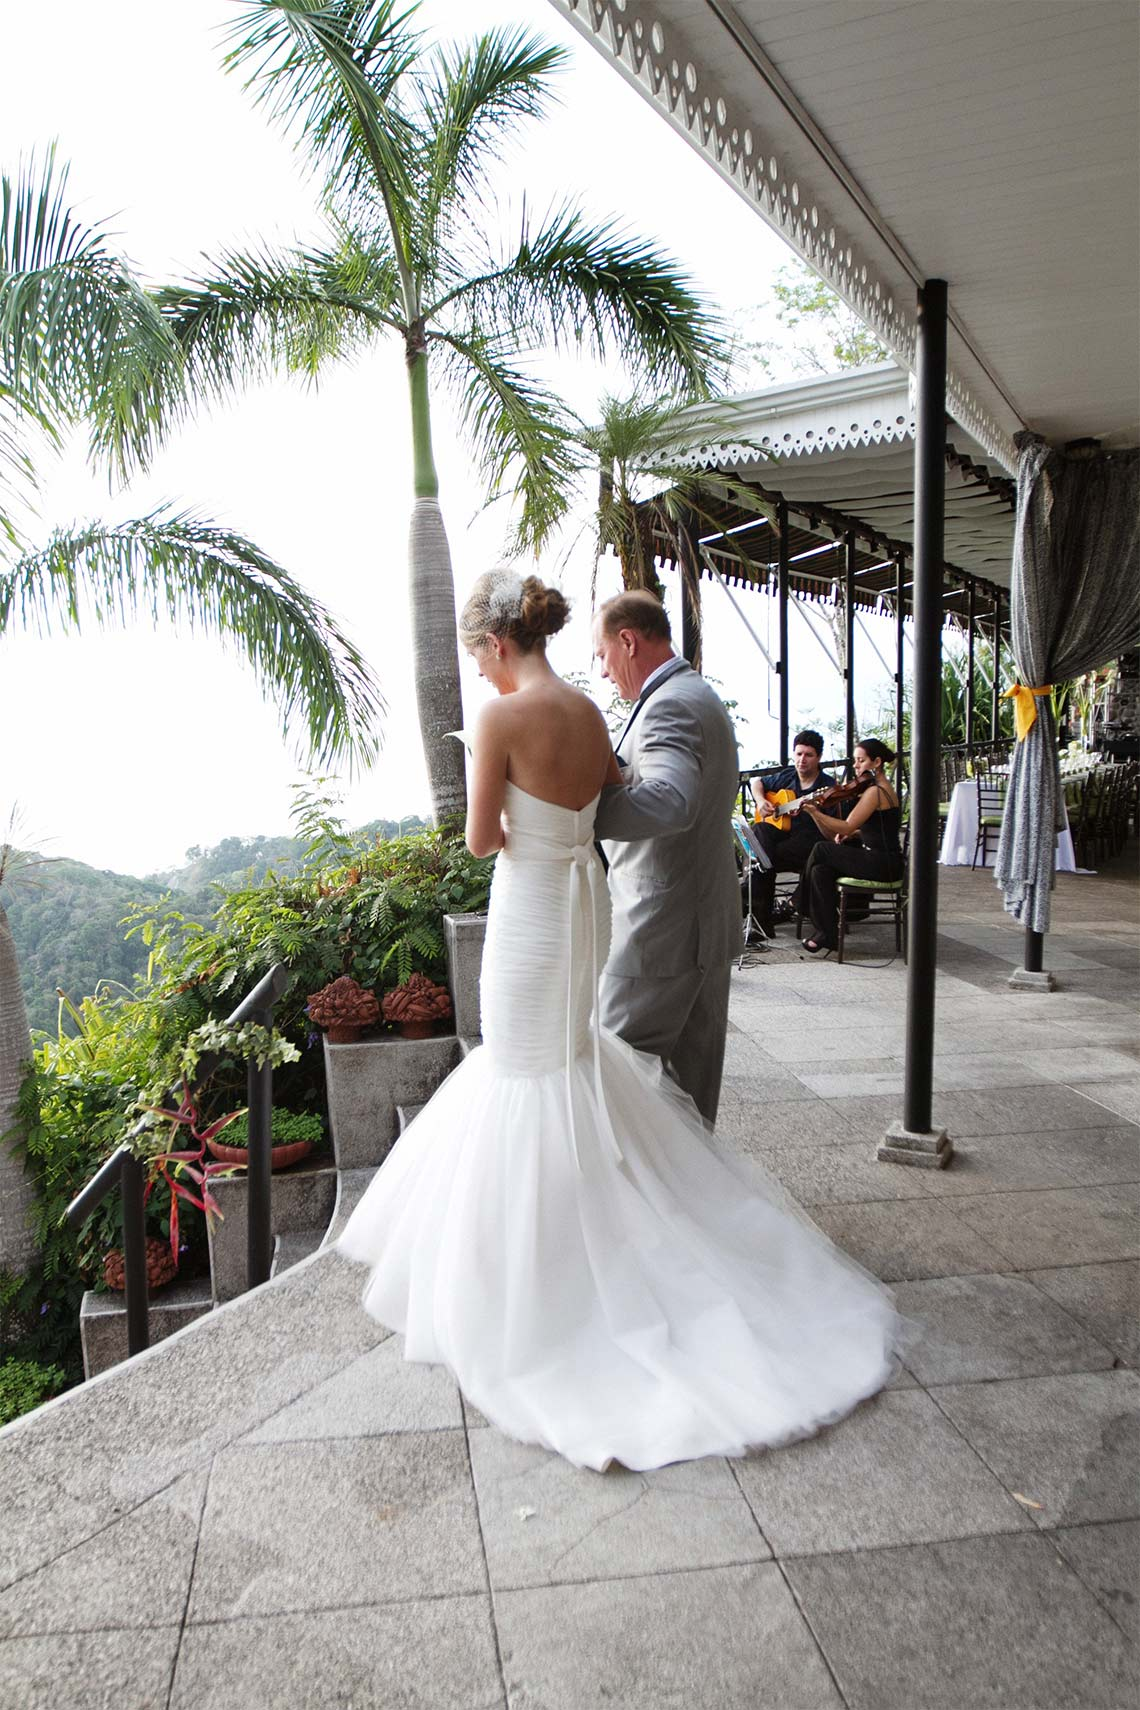 destination wedding Costa Rica omaha wedding photographer005